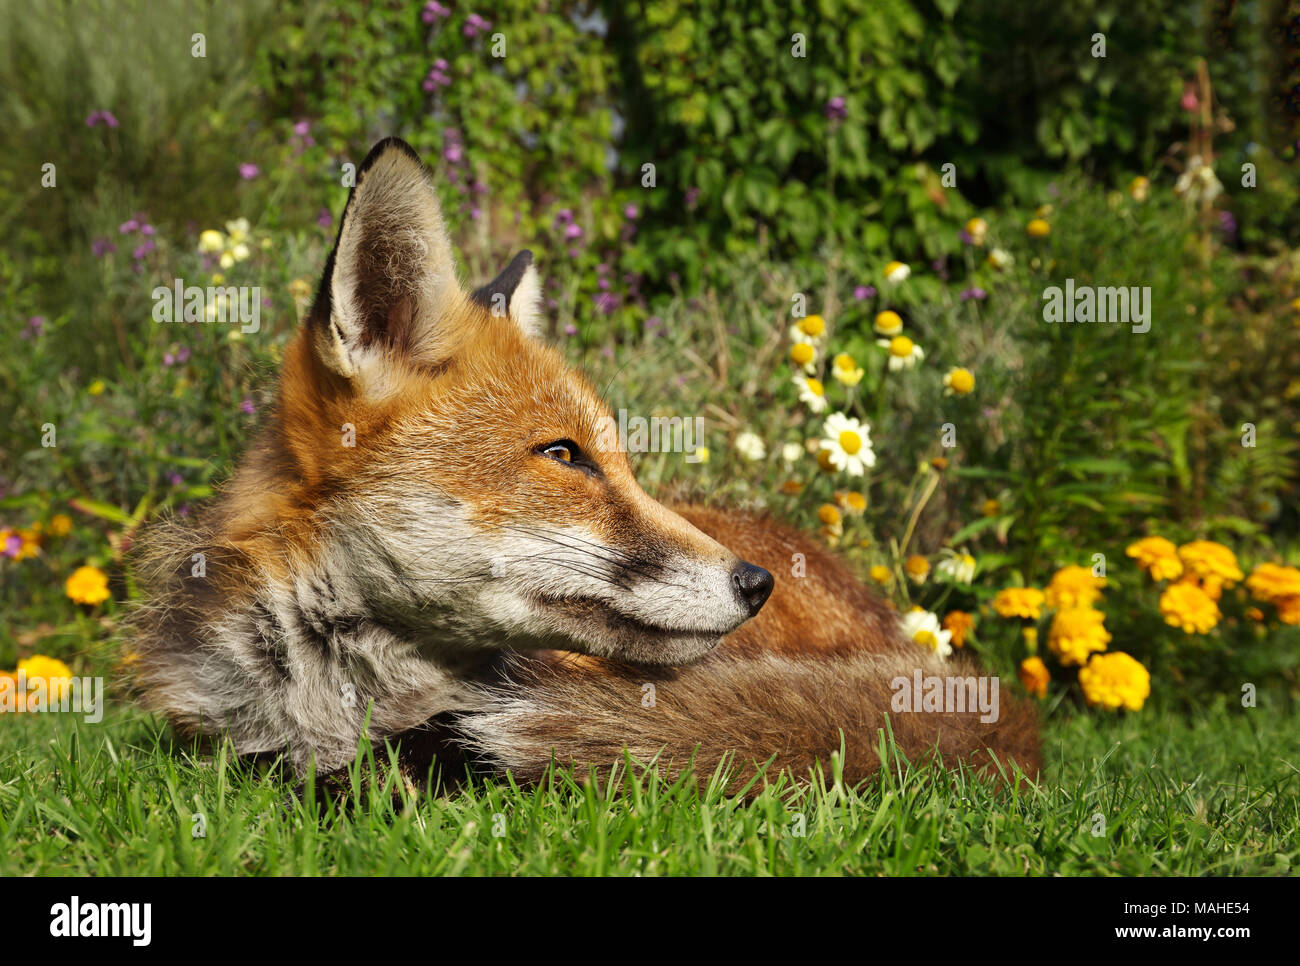 Red fox lying in the garden with flowers, summer in UK. - Stock Image